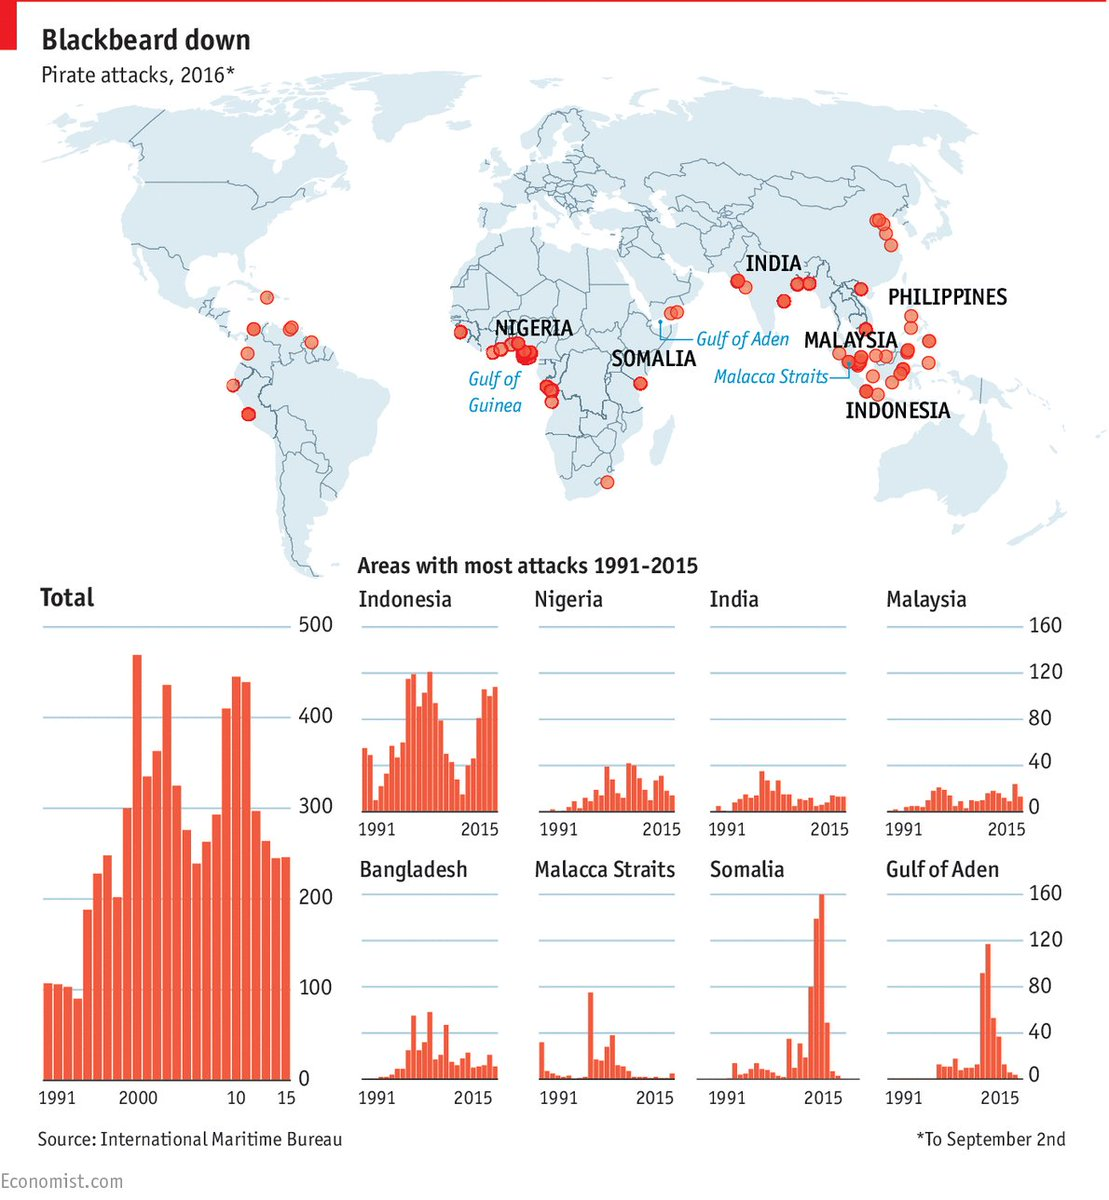 Indonesia's waters remained the most pirate-infested in the world